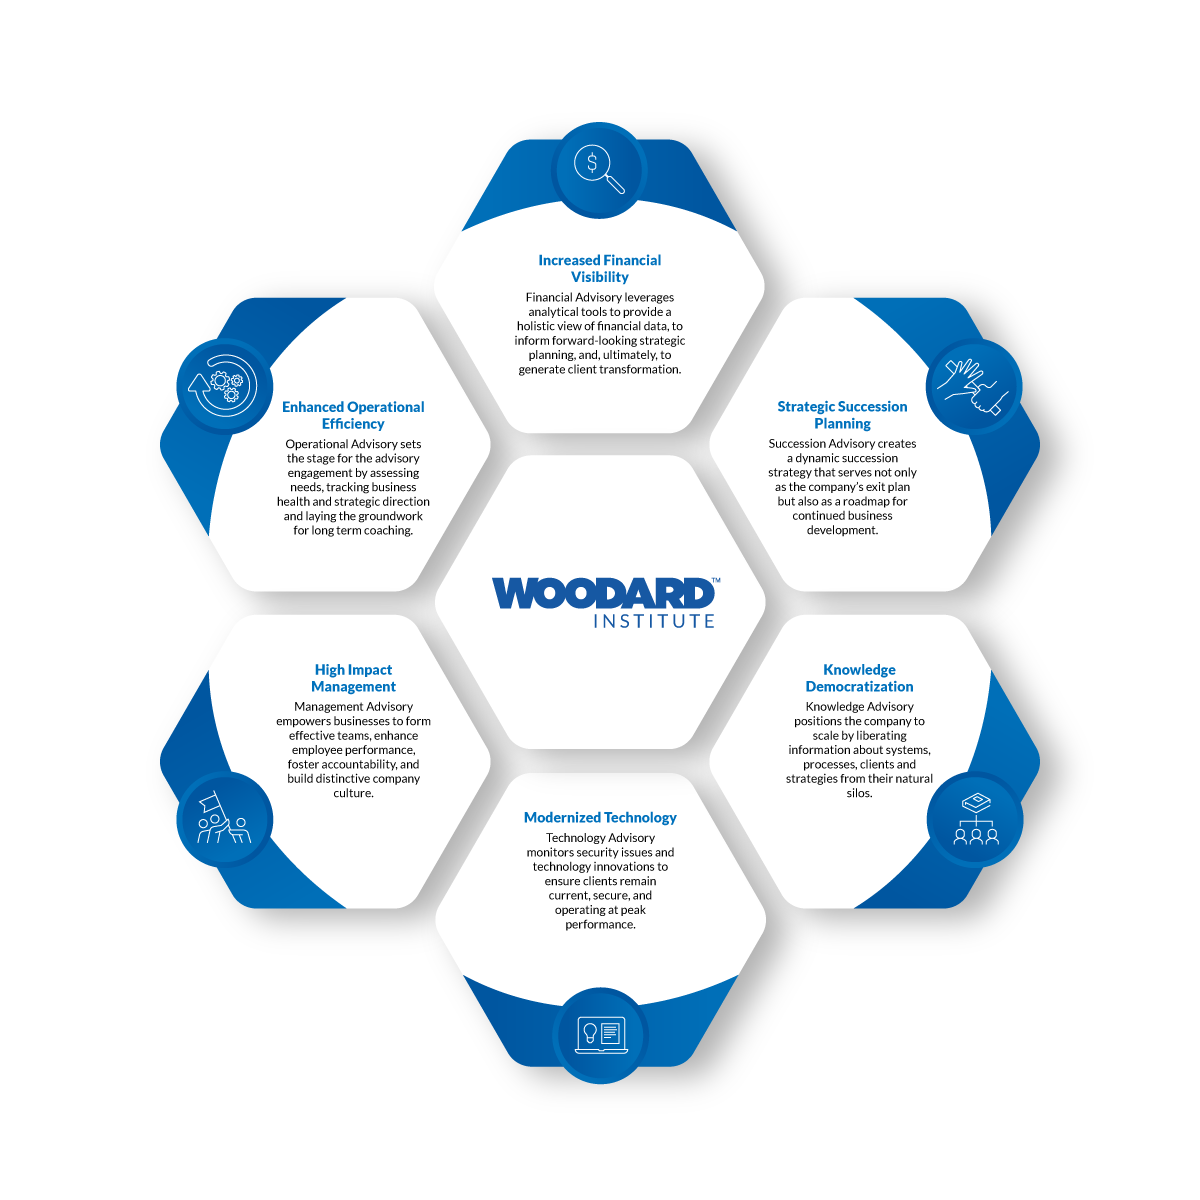 six hexagon sections with large hexagon in the middle of the pattern. The large middle section is labeled 'Woodard Institute' Decrease the screen size to see the text in this image below 960px.